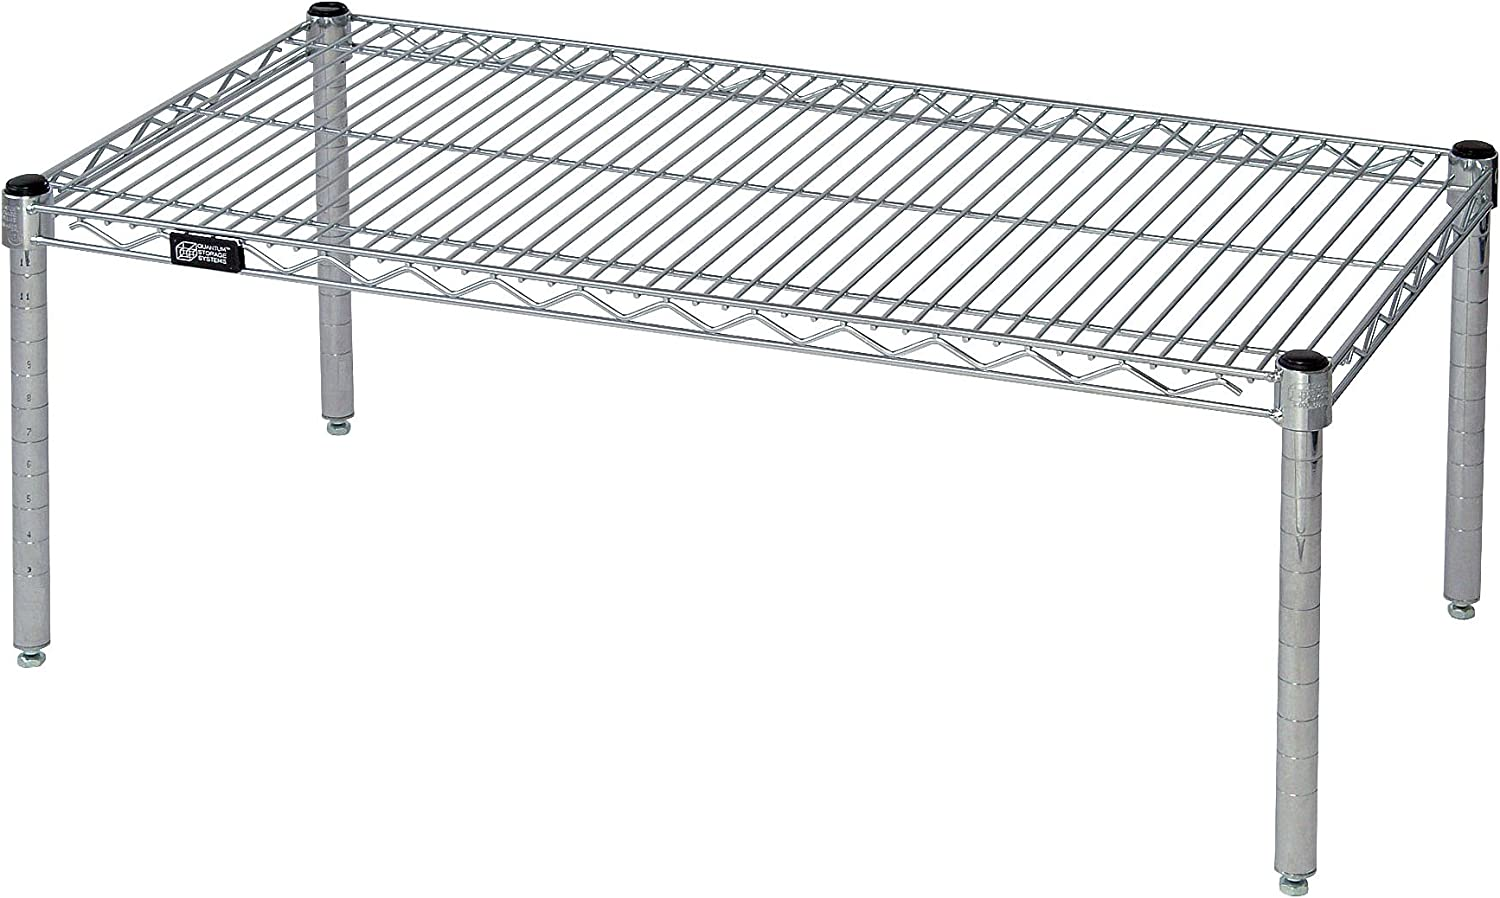 Quantum Storage Systems 243614PC Shelf Platform Rack, Chrome Finish, 24  Width x 36  Length x 14  Height